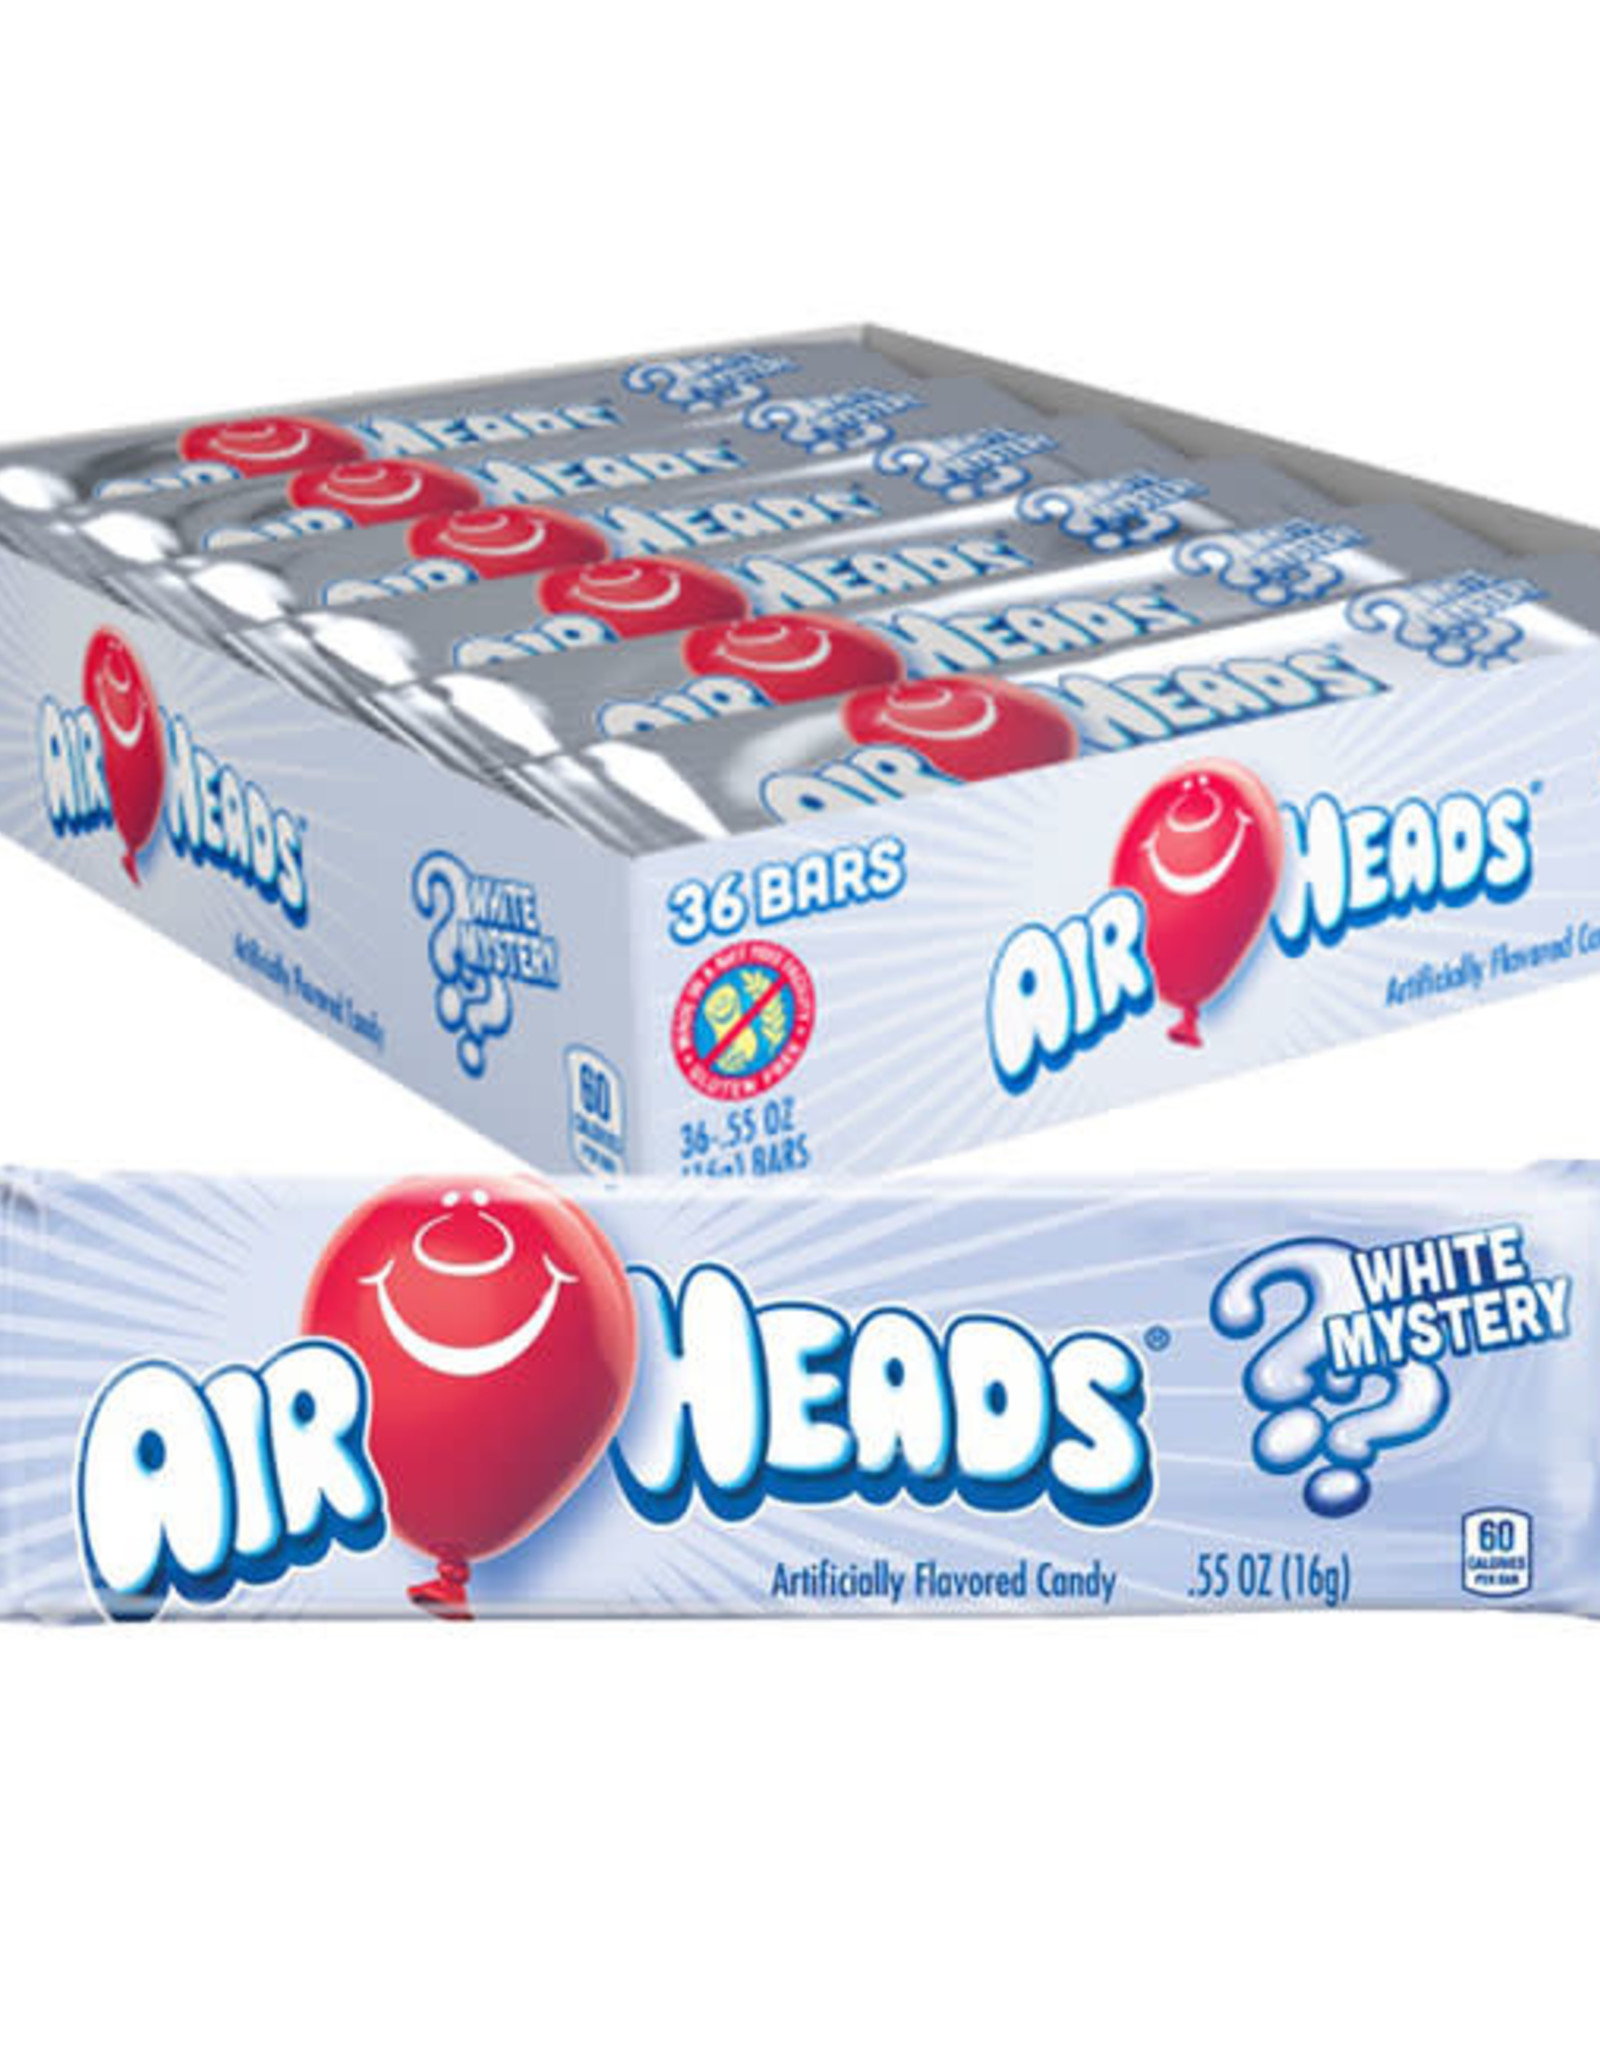 Airheads Singles White Mystery